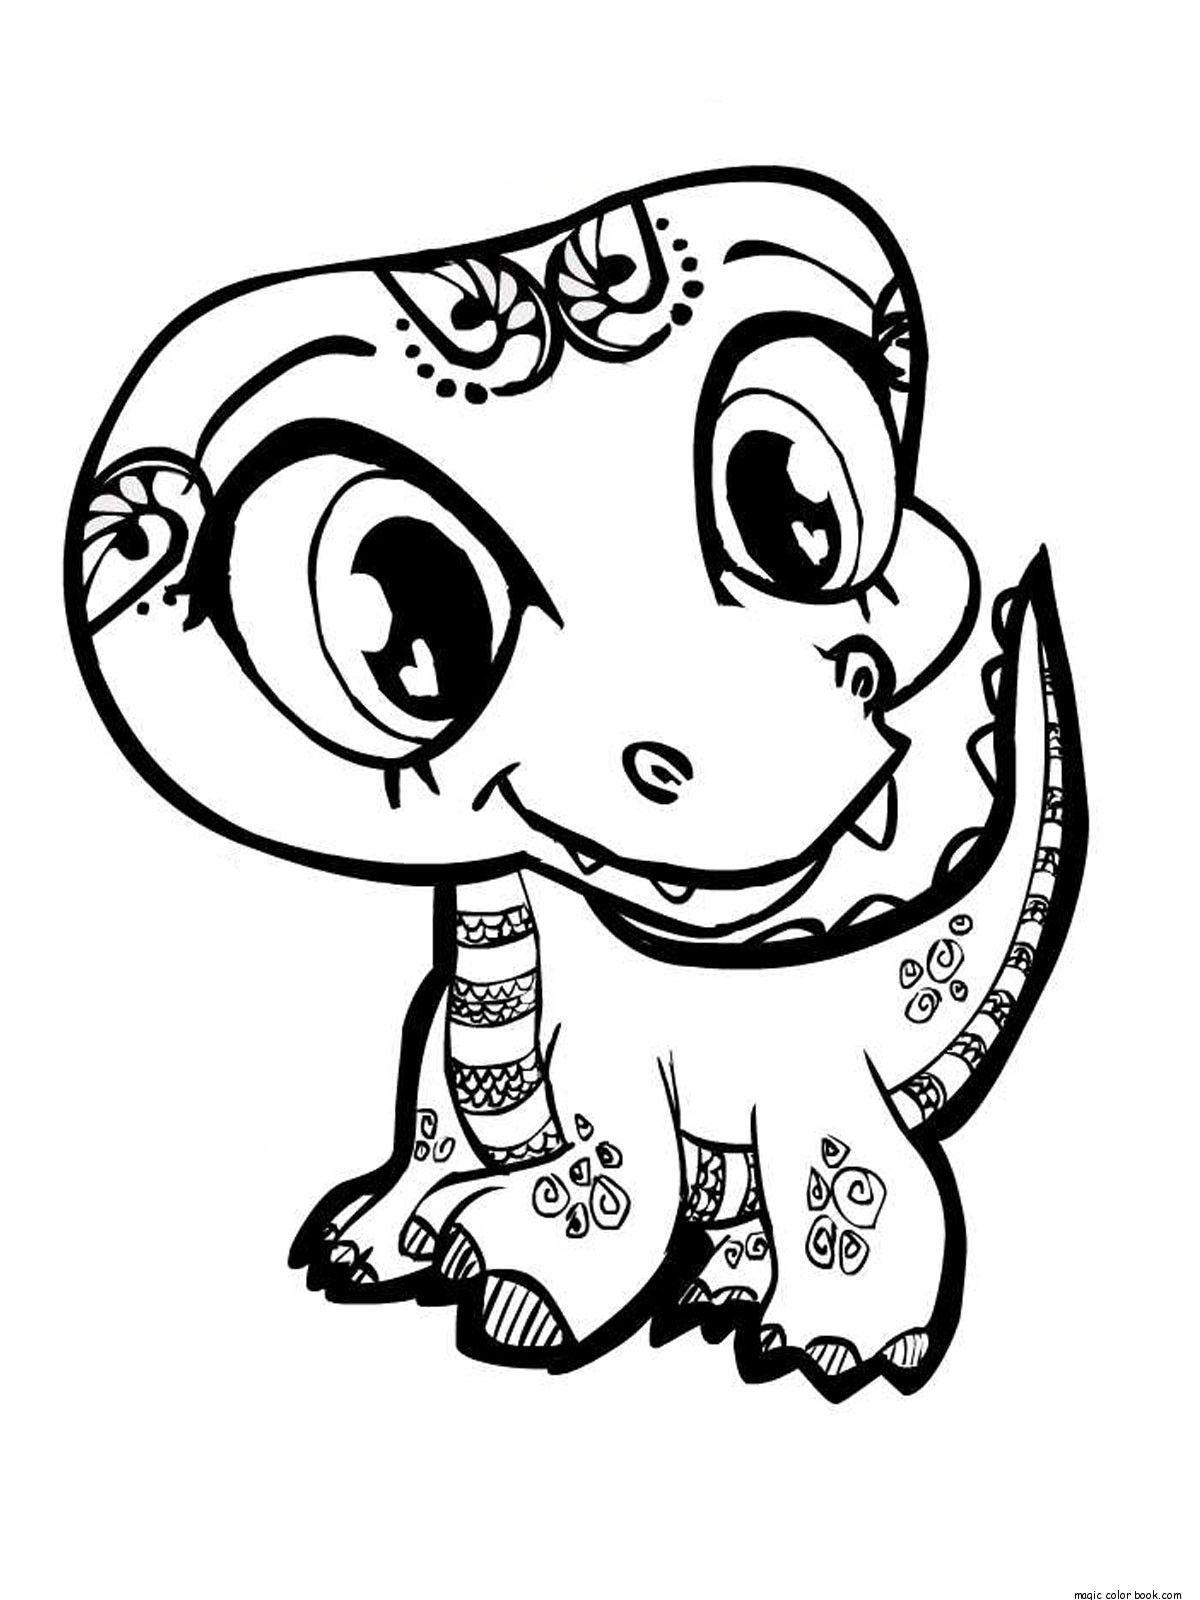 My littlest pet shop coloring pages coloring home for Littlest pet shop coloring pages panda